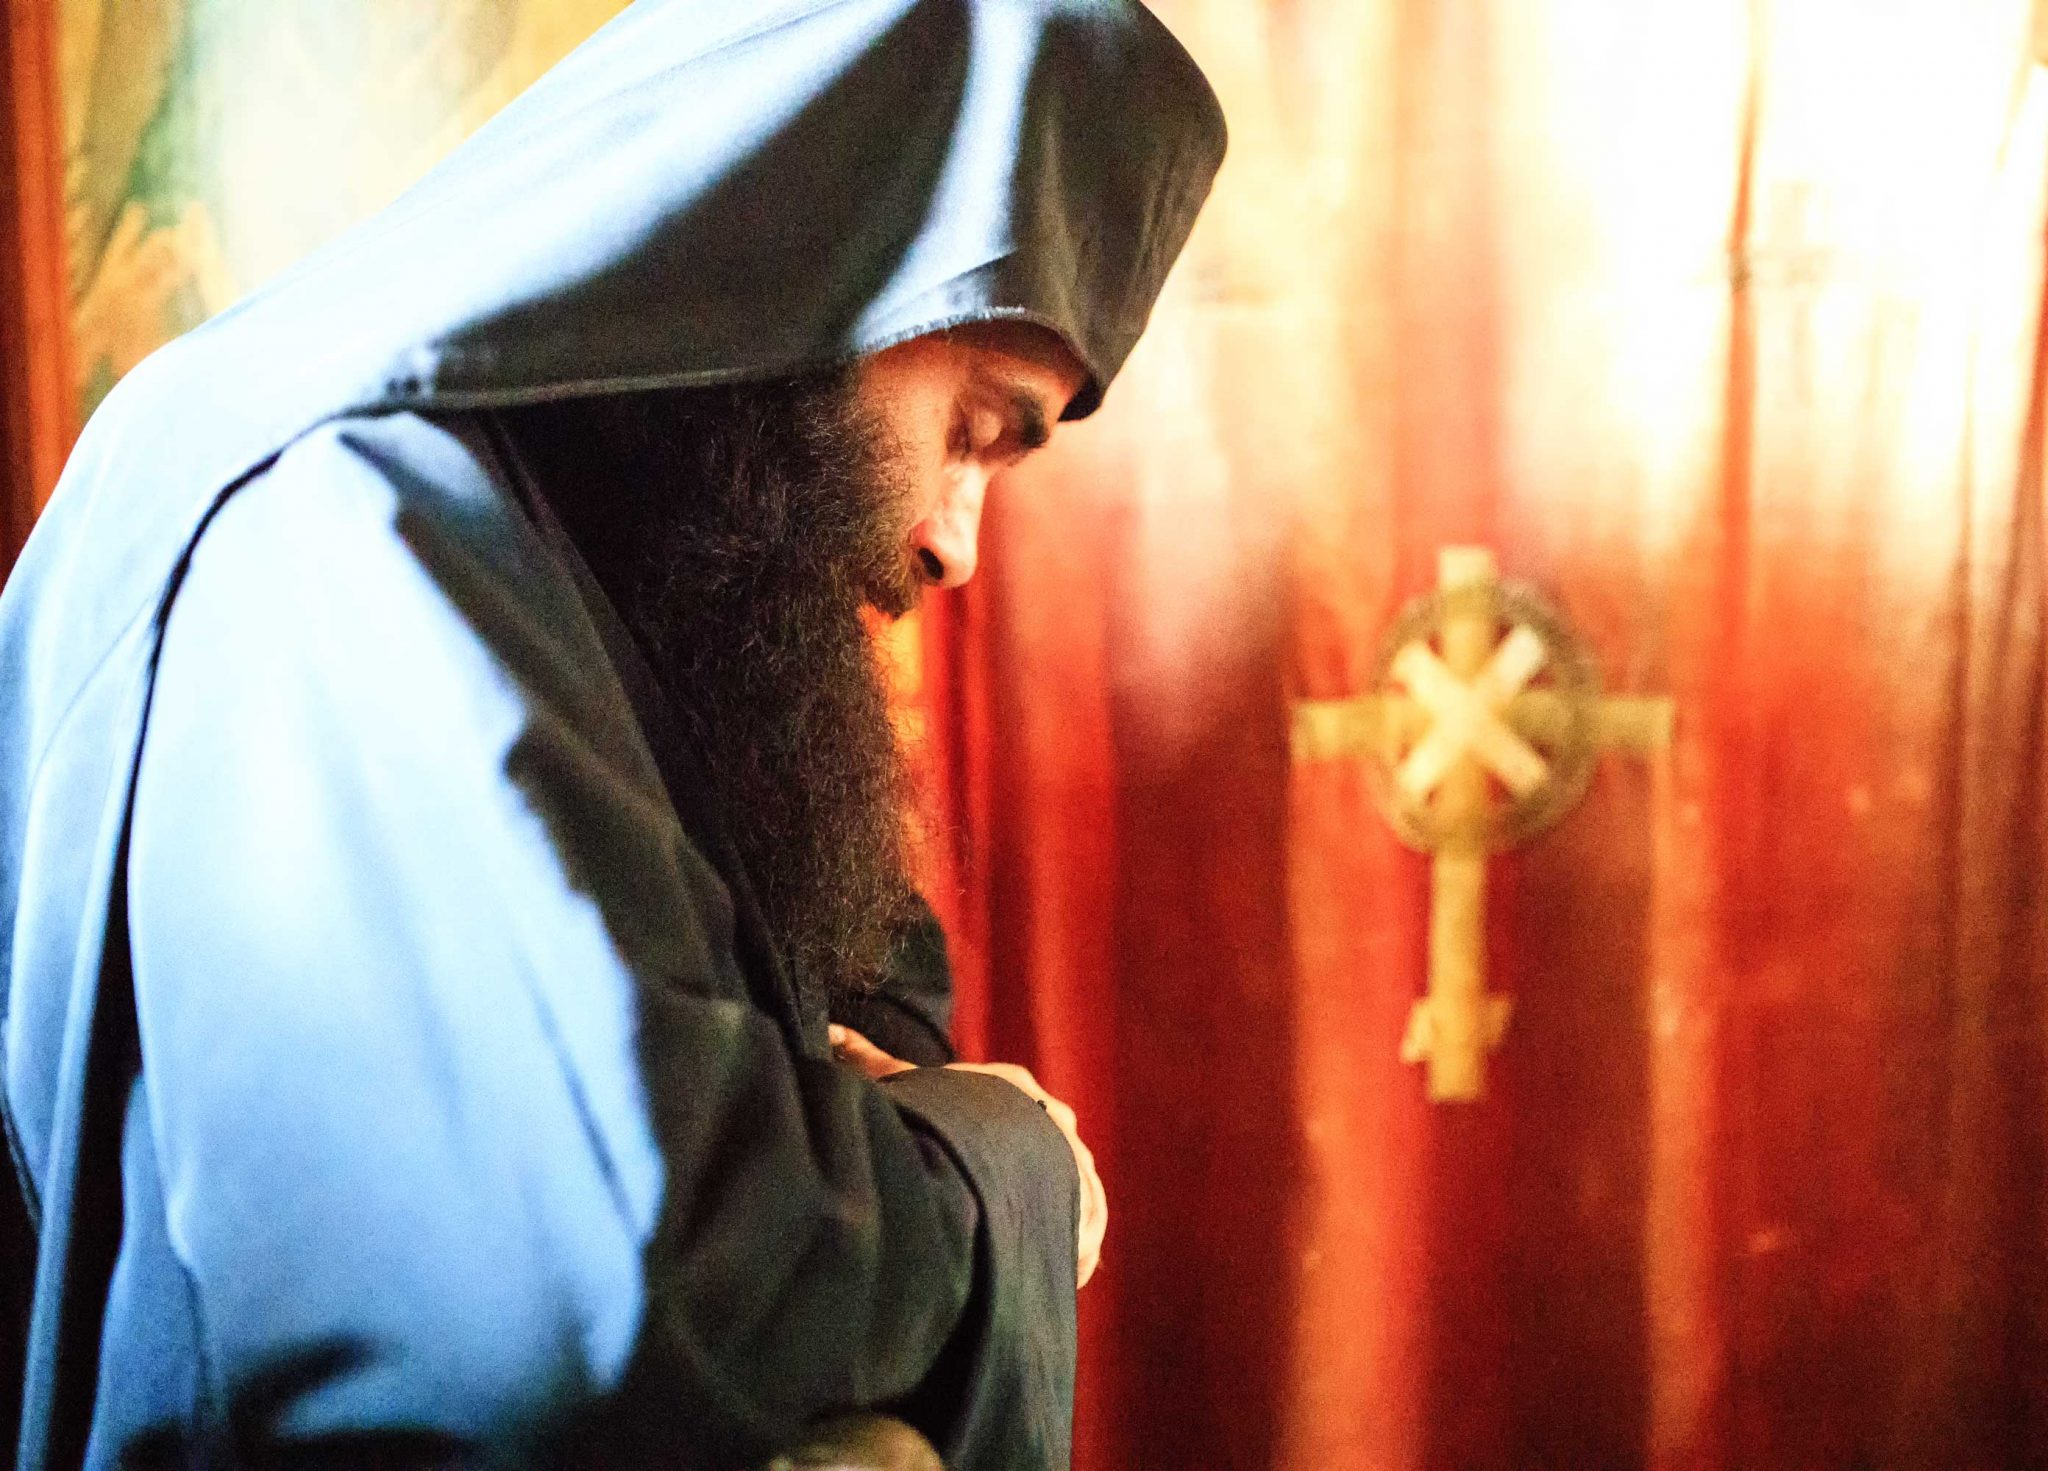 Judge, New start - Ascetic Experience - Vatopedi, Vatopaidi Monastery Holy Mountain (Athos)